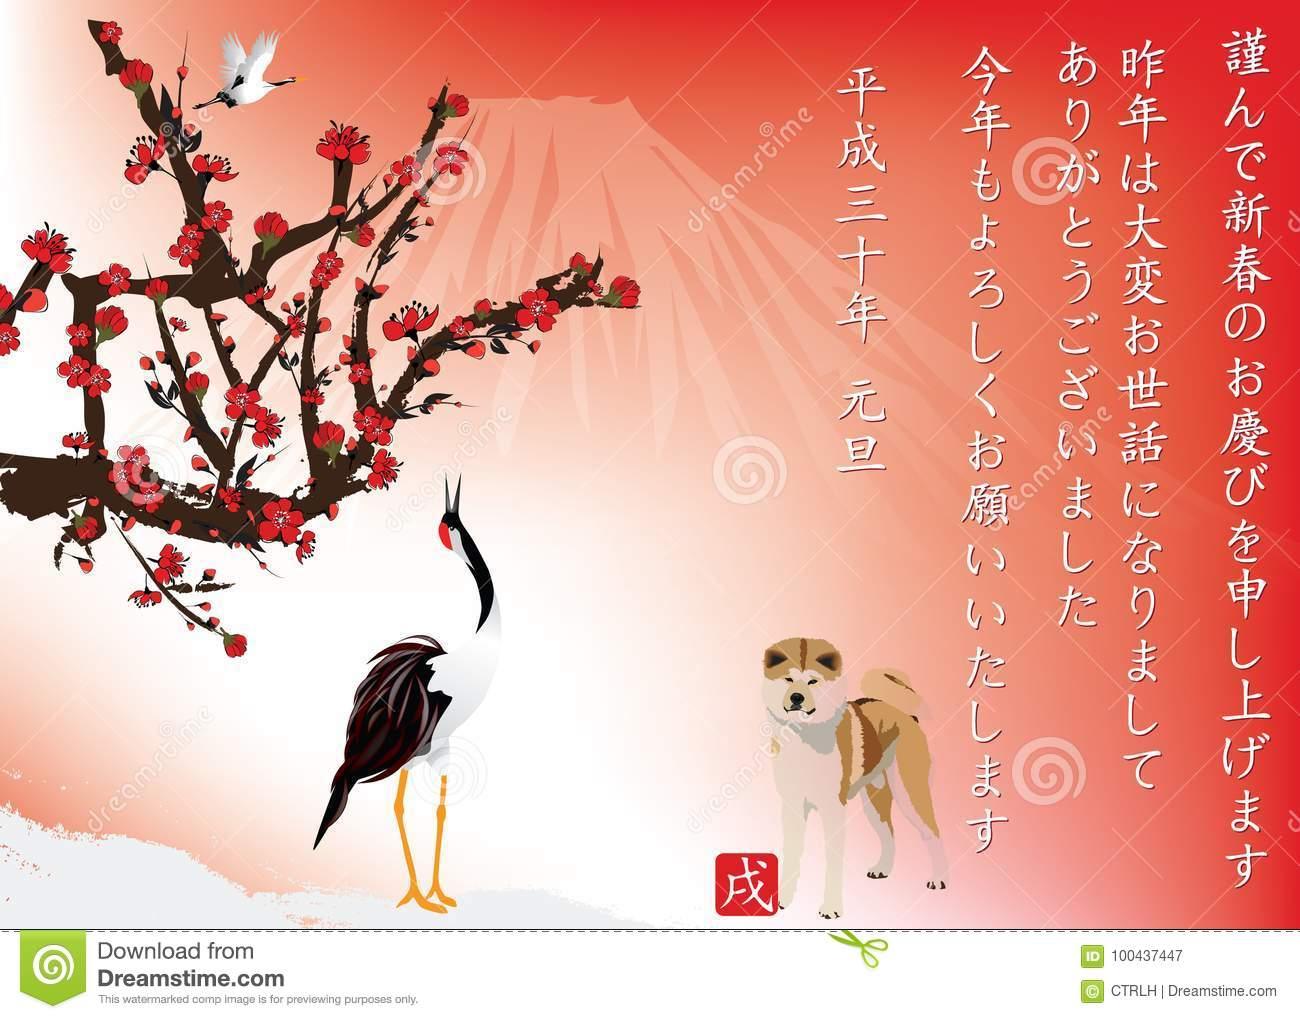 Japanese new year of the dog 2018 greeting card stock illustration japanese new year greeting card text translation congratulations on the new year thank you for your great help during the past year m4hsunfo